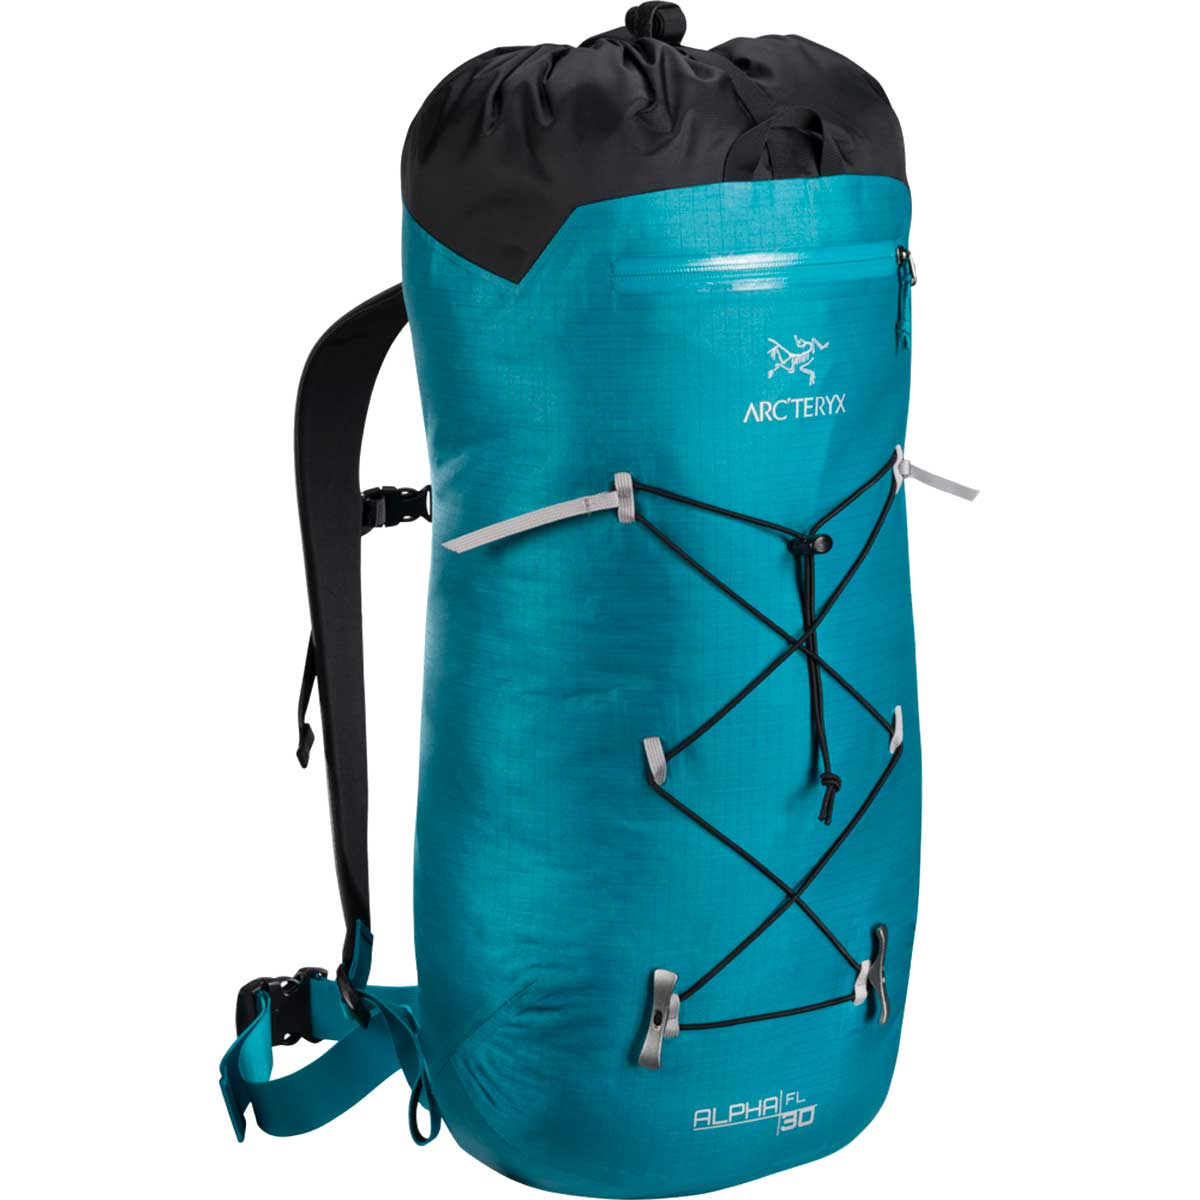 Arcteryx Alpha FL 30 backpack in Dark Firoza, or teal